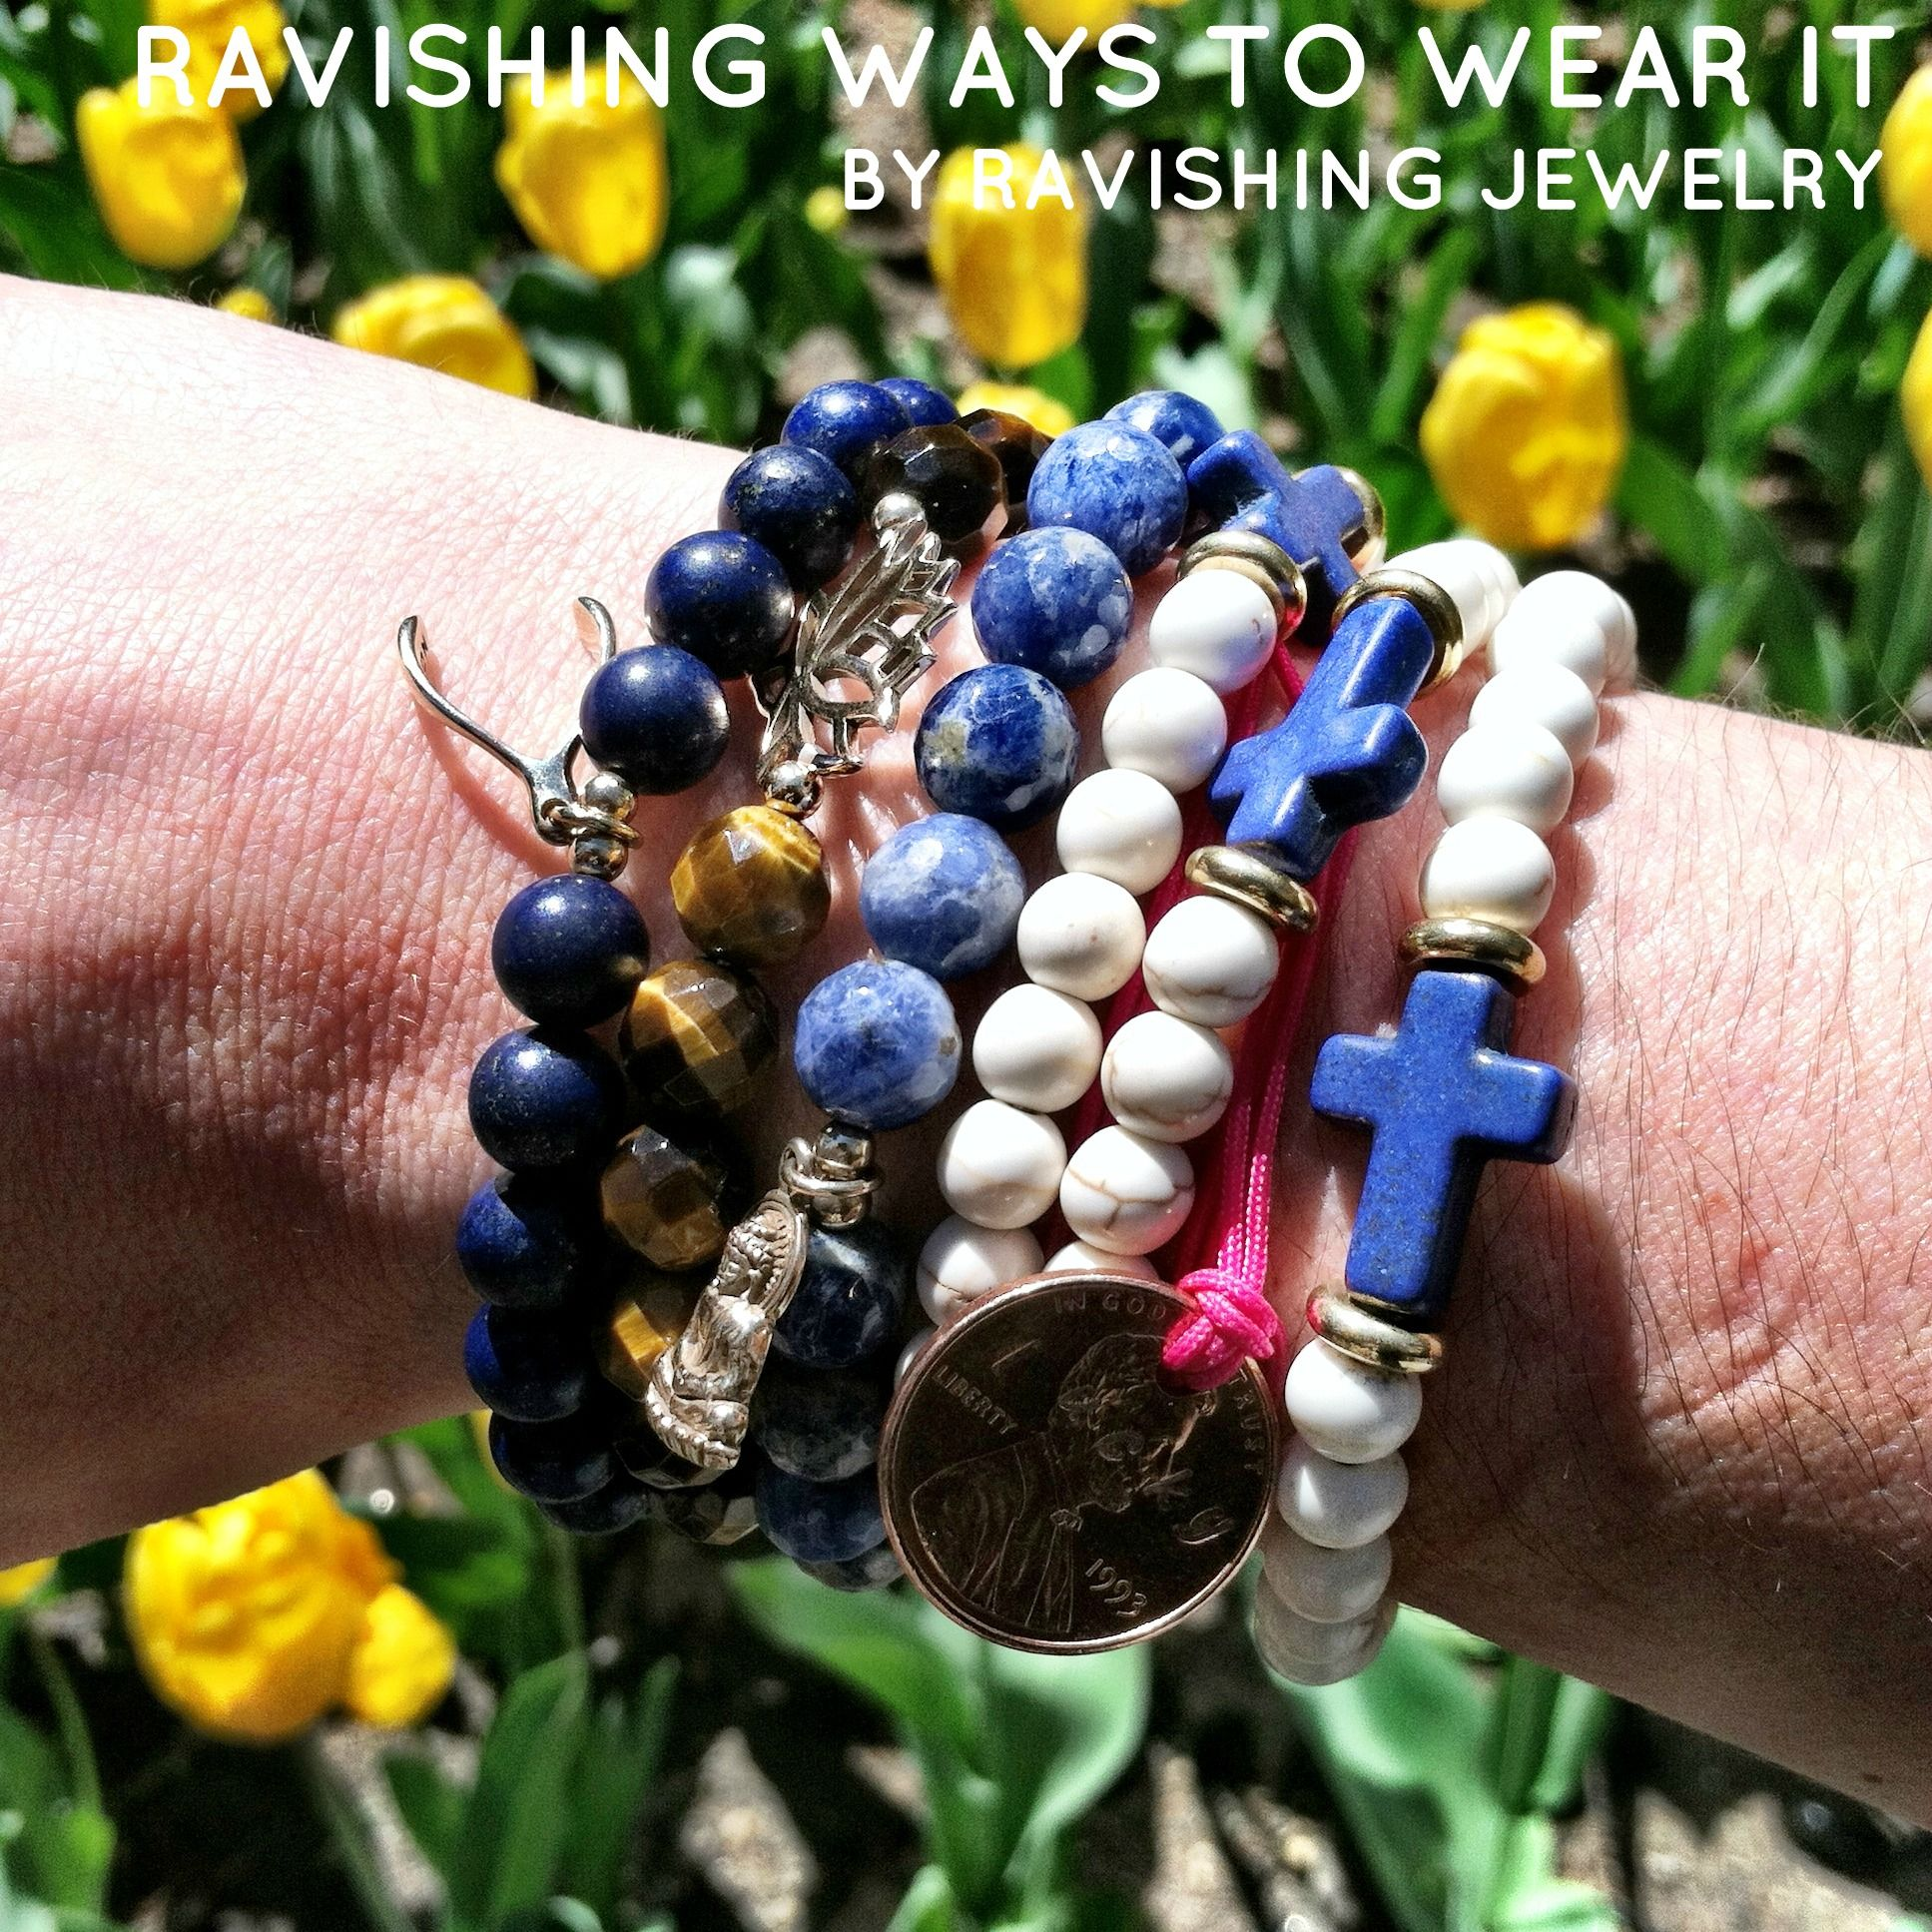 A combo of Ravishing Jewelry bracelets mixed and matched with meaning #jewelry #stack #bracelet #braceletstack #wristparty #charmbracelets #ravishing #ravishingjewelry #zen #inspired #yogajewelry #yogainspired #love #style #fashion #jewels